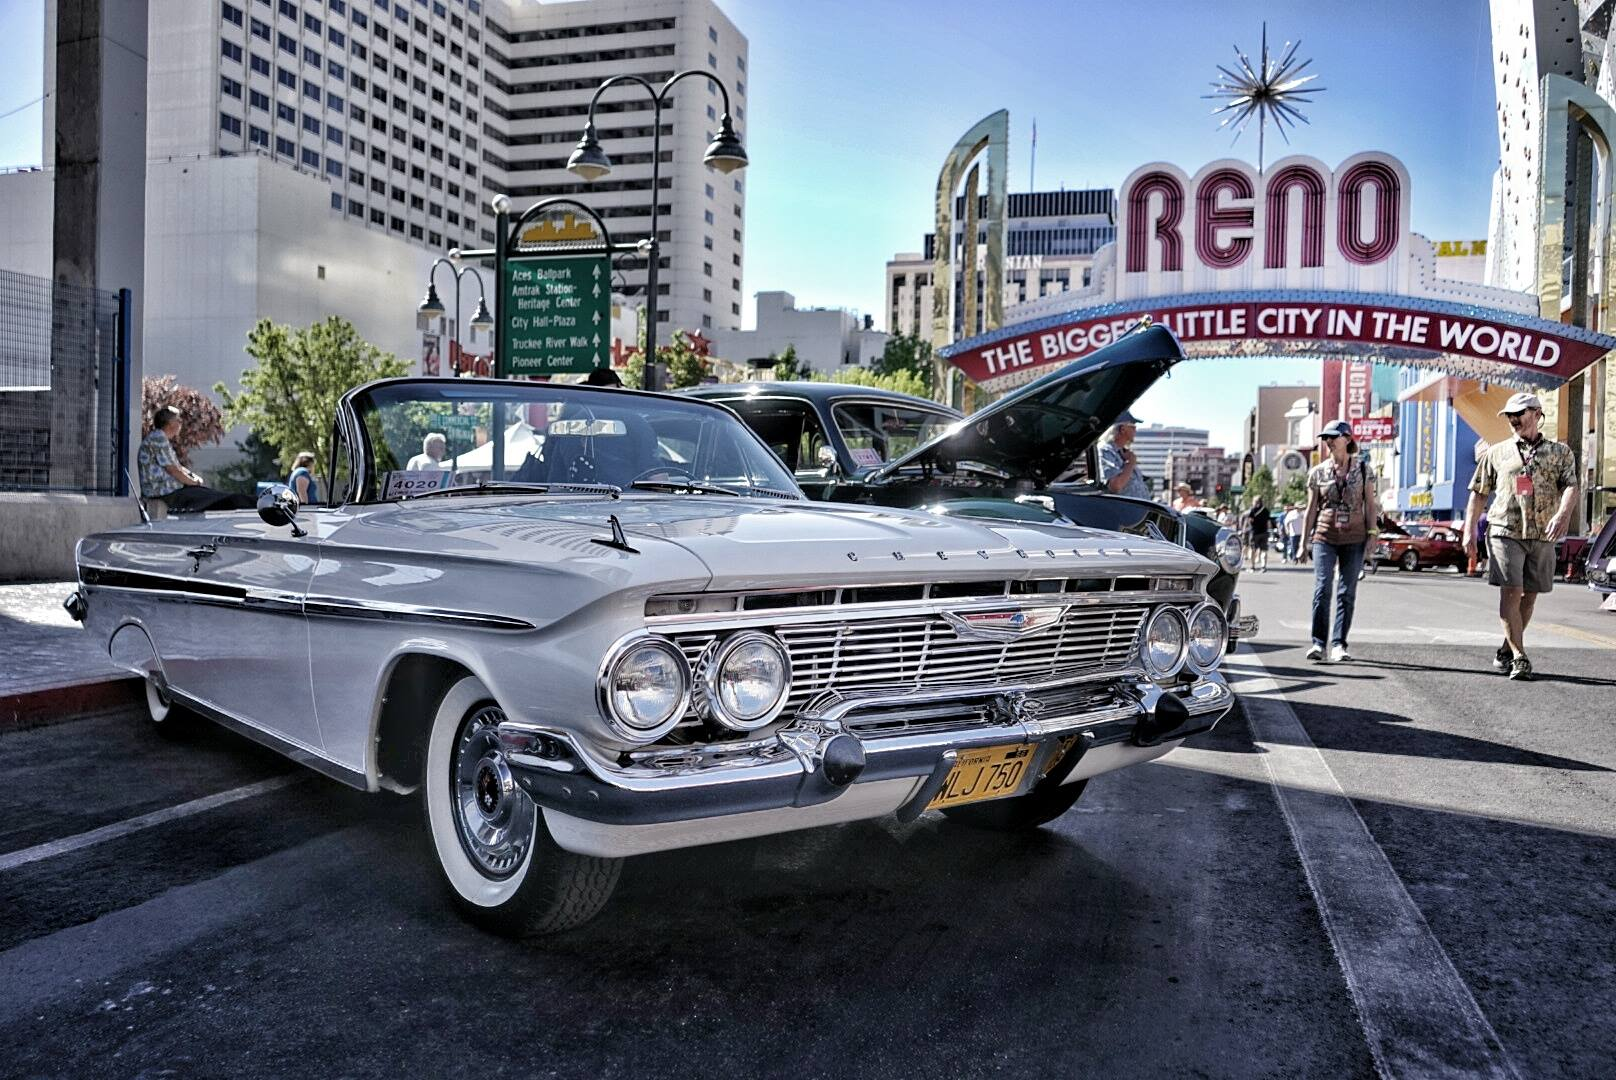 Hot August Nights News ERNLivecom - Hot august nights car show reno nevada